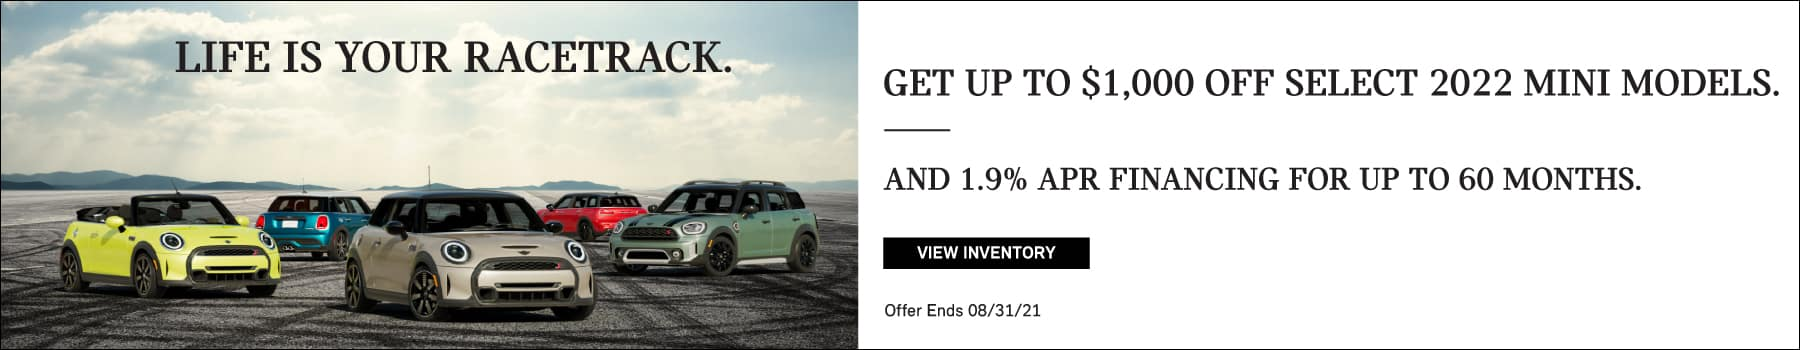 Get up to $1,000 off select 2022 MINI models, and 1.9% APR Financing for up to 60 months. Valid through 08/31/21. Click to view inventory. See dealer for full details. Image shows a family of 2022 MINI vehicles parked on a racetrack with tire marks. The world is your racetrack.